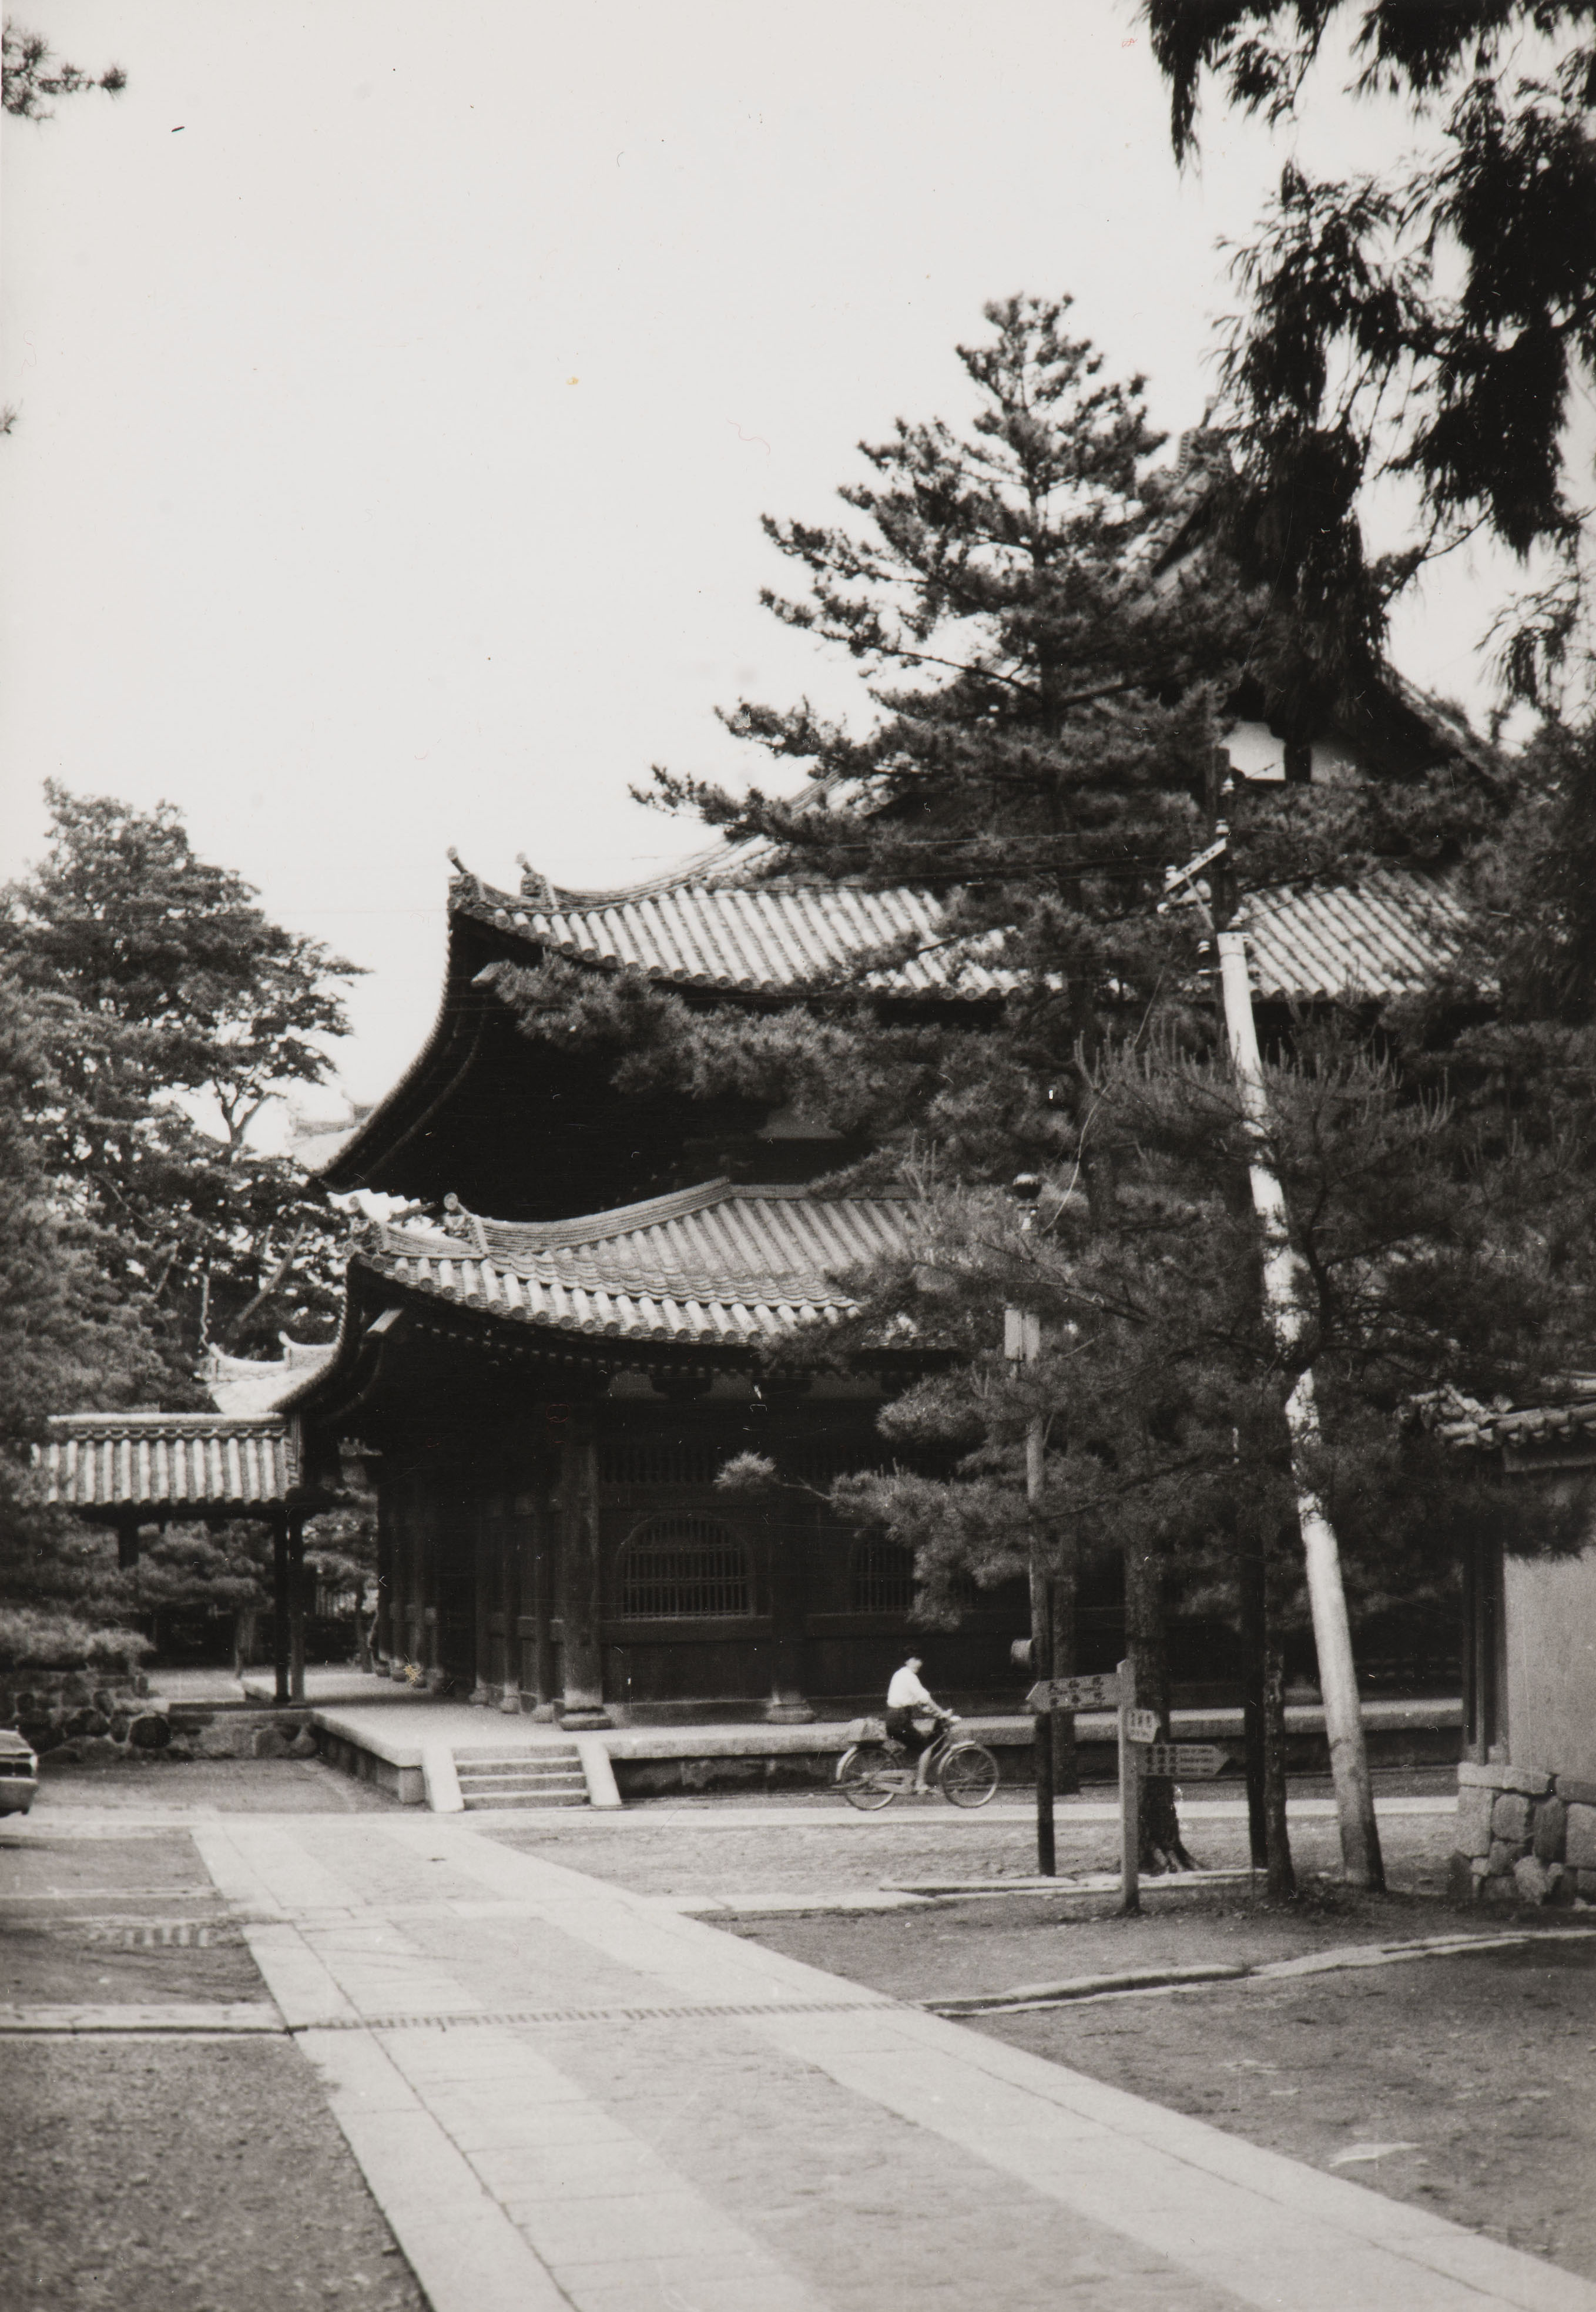 A black and white photograph of a walkway leading to a Japanese temple.